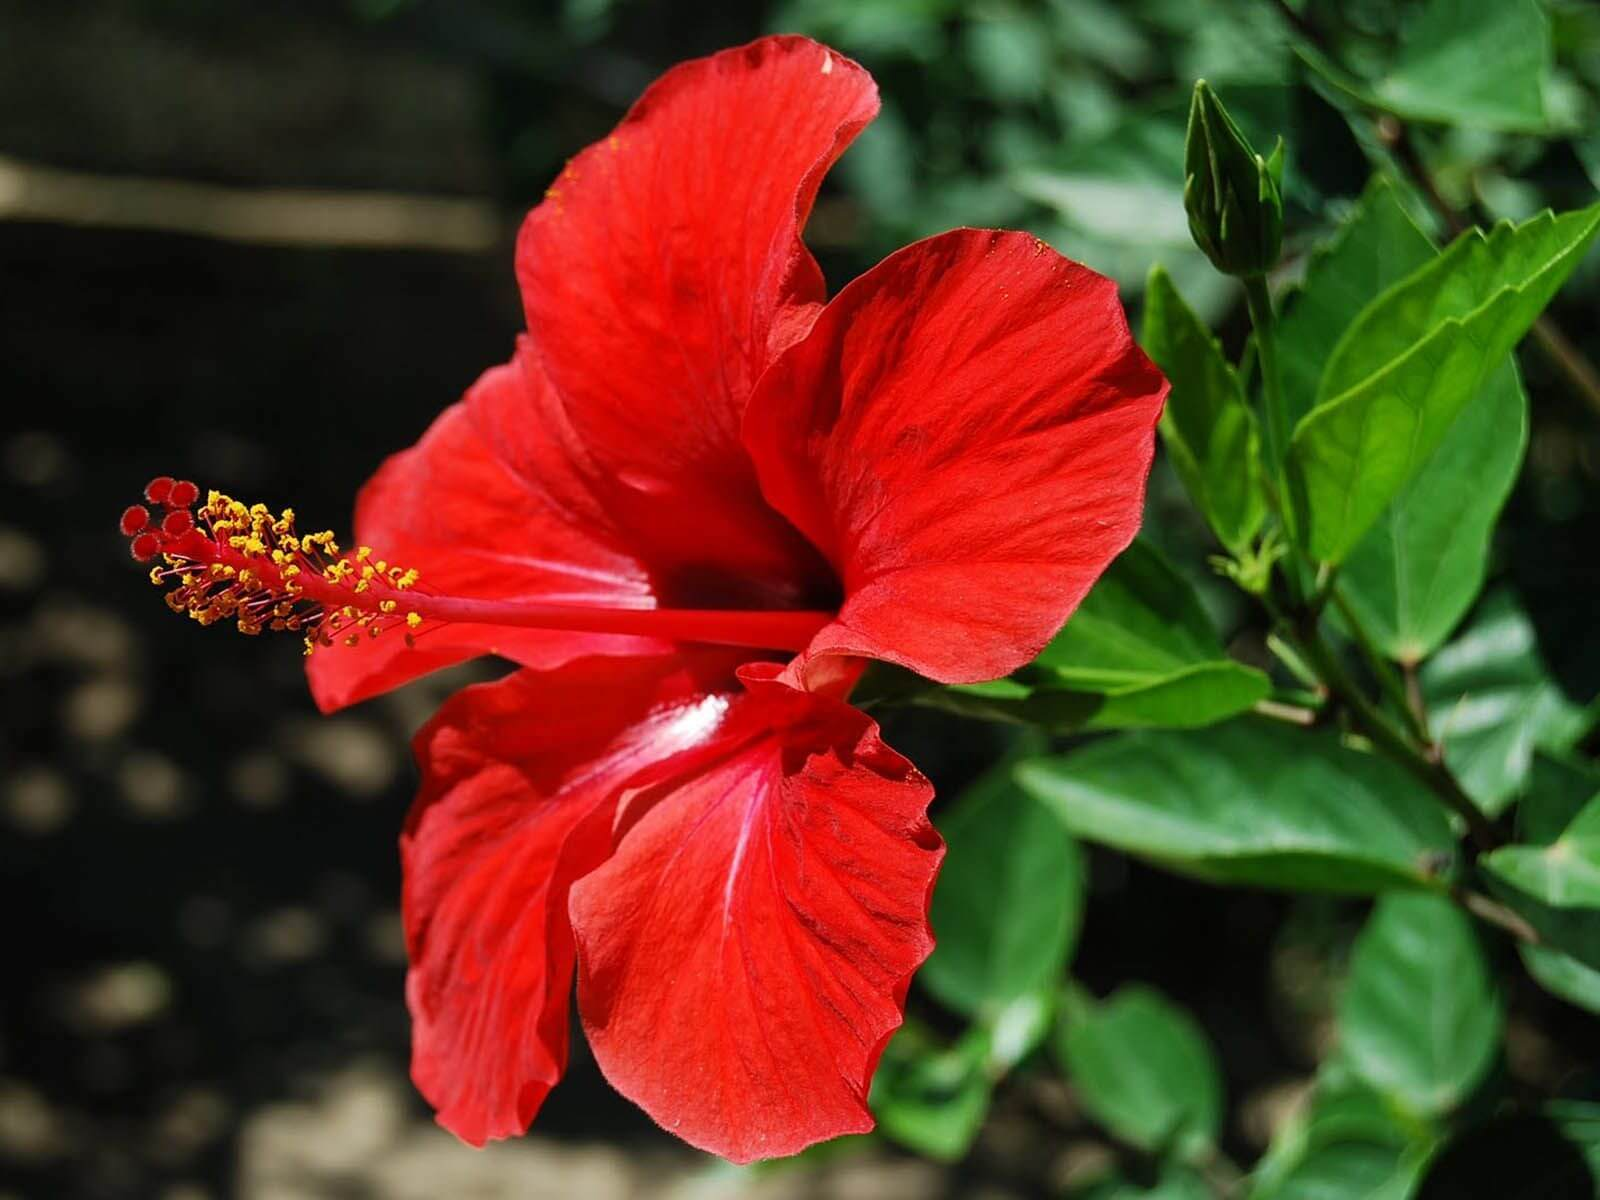 How to grow and care for hibiscus anonymous enthusiast hibiscus plant is not only beautiful but it has so many health benefits its also called rose mallow chinese rose and gul e khatmi in urdu izmirmasajfo Image collections